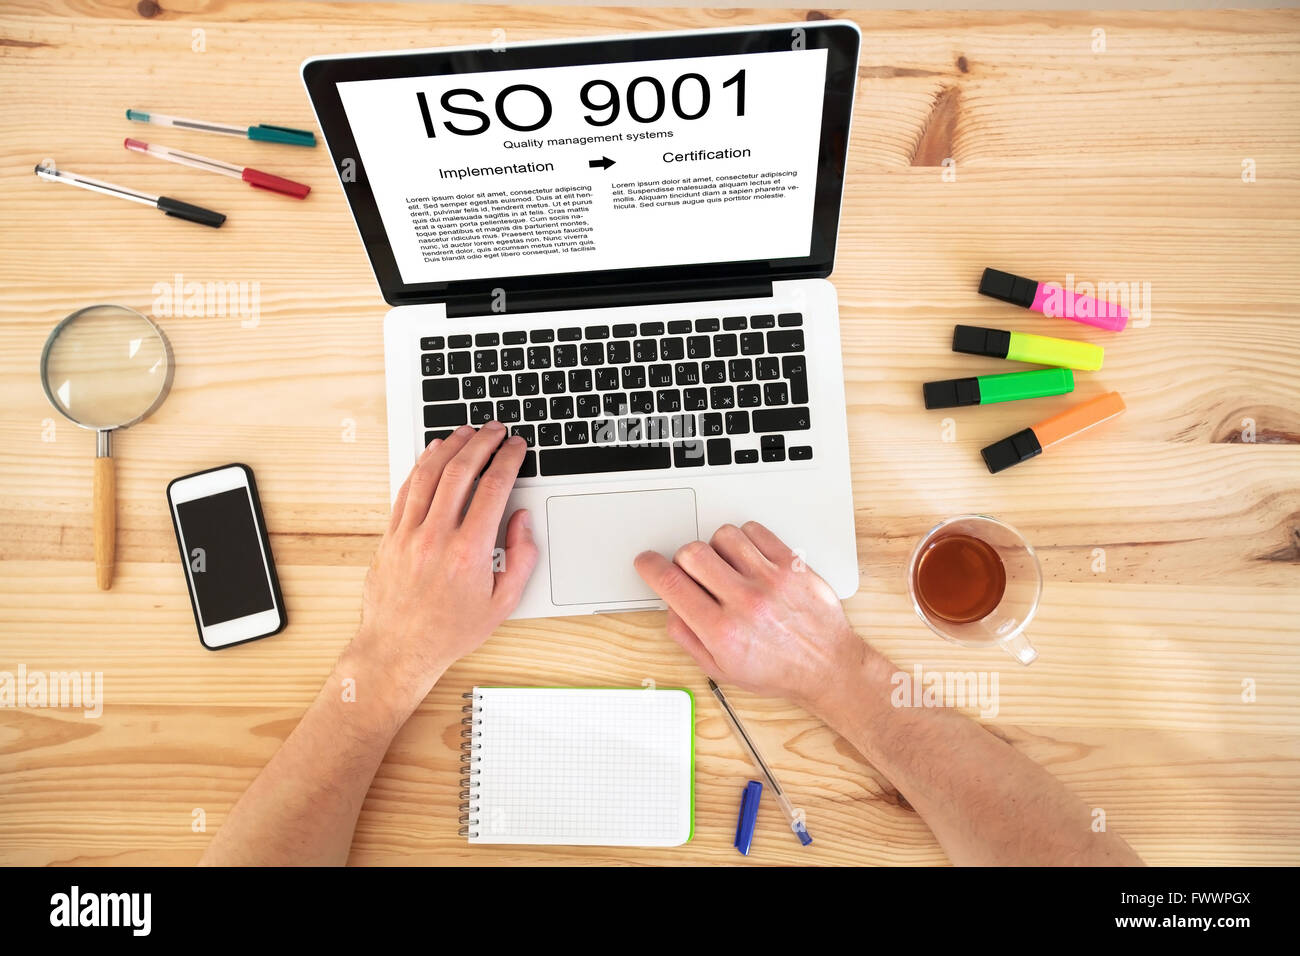 Concept de la norme ISO 9001, Systèmes de management de la qualité Photo Stock